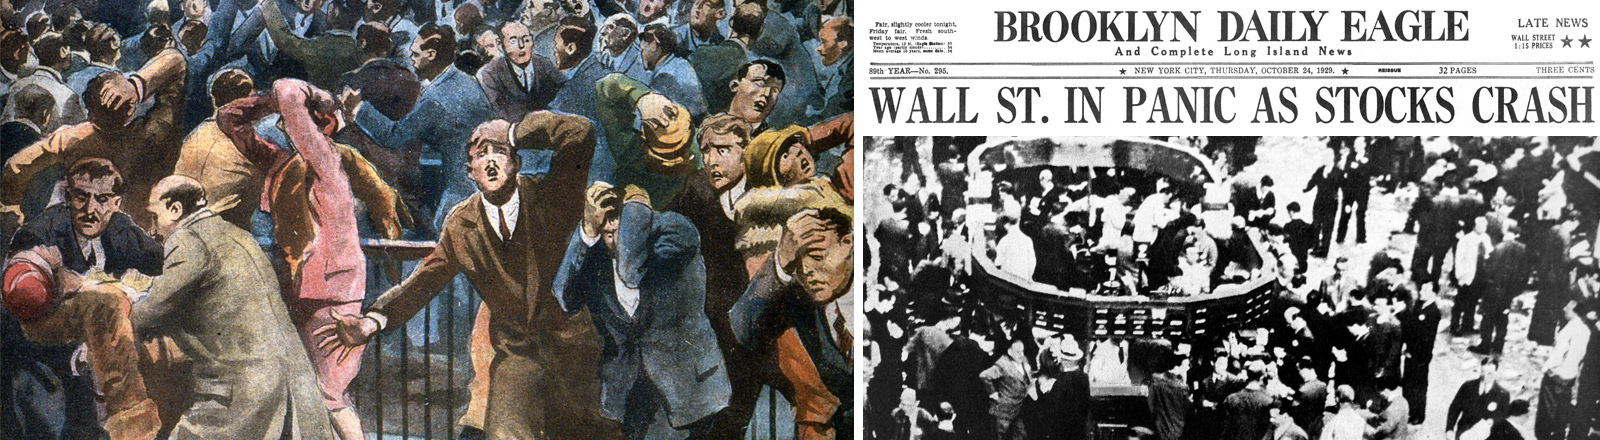 Wall Street Crash 29 Oktober 1929: Illustration von Alfredo Ortelli, Historische Fotografie aus der Wall Street, Zeitungsheadline Brooklyn Daily Eagle